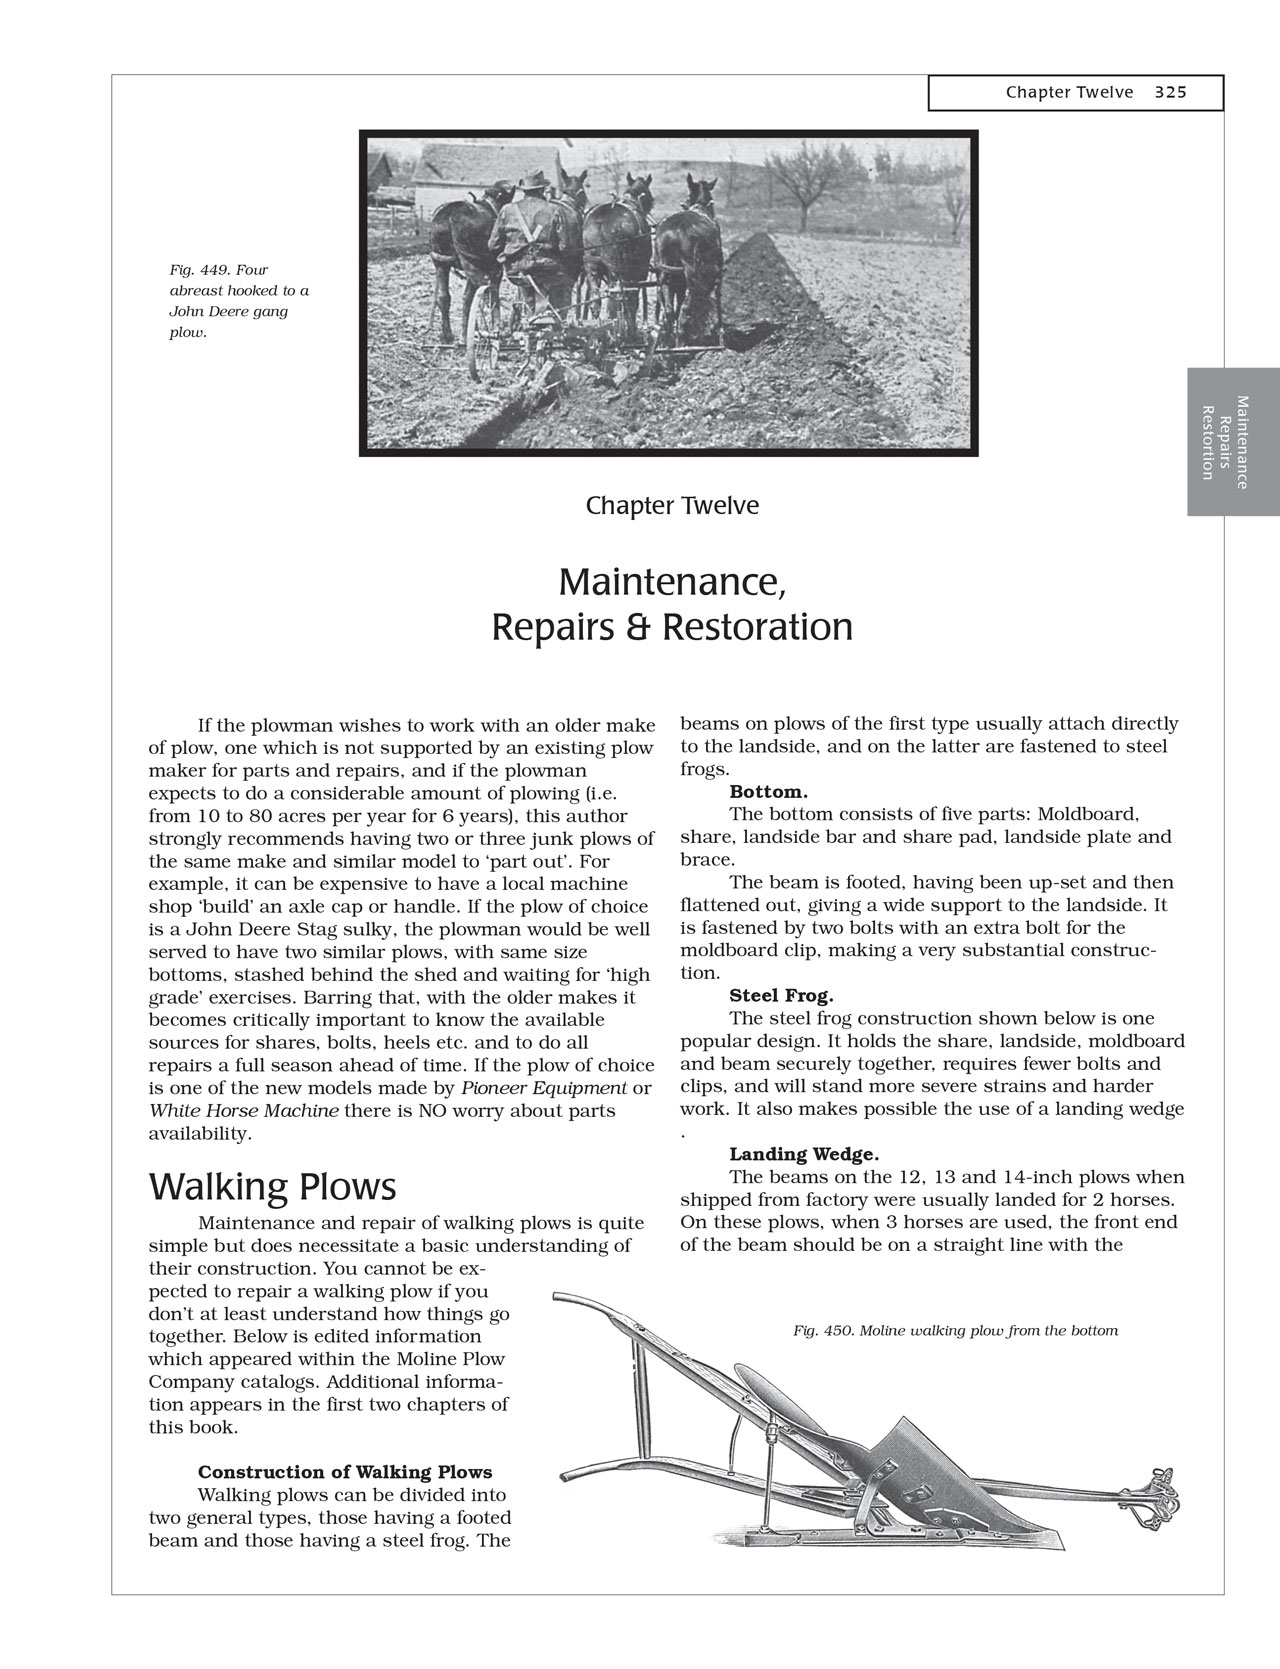 Horsedrawn Plows and plowing - Maintenance Repairs and Restoration